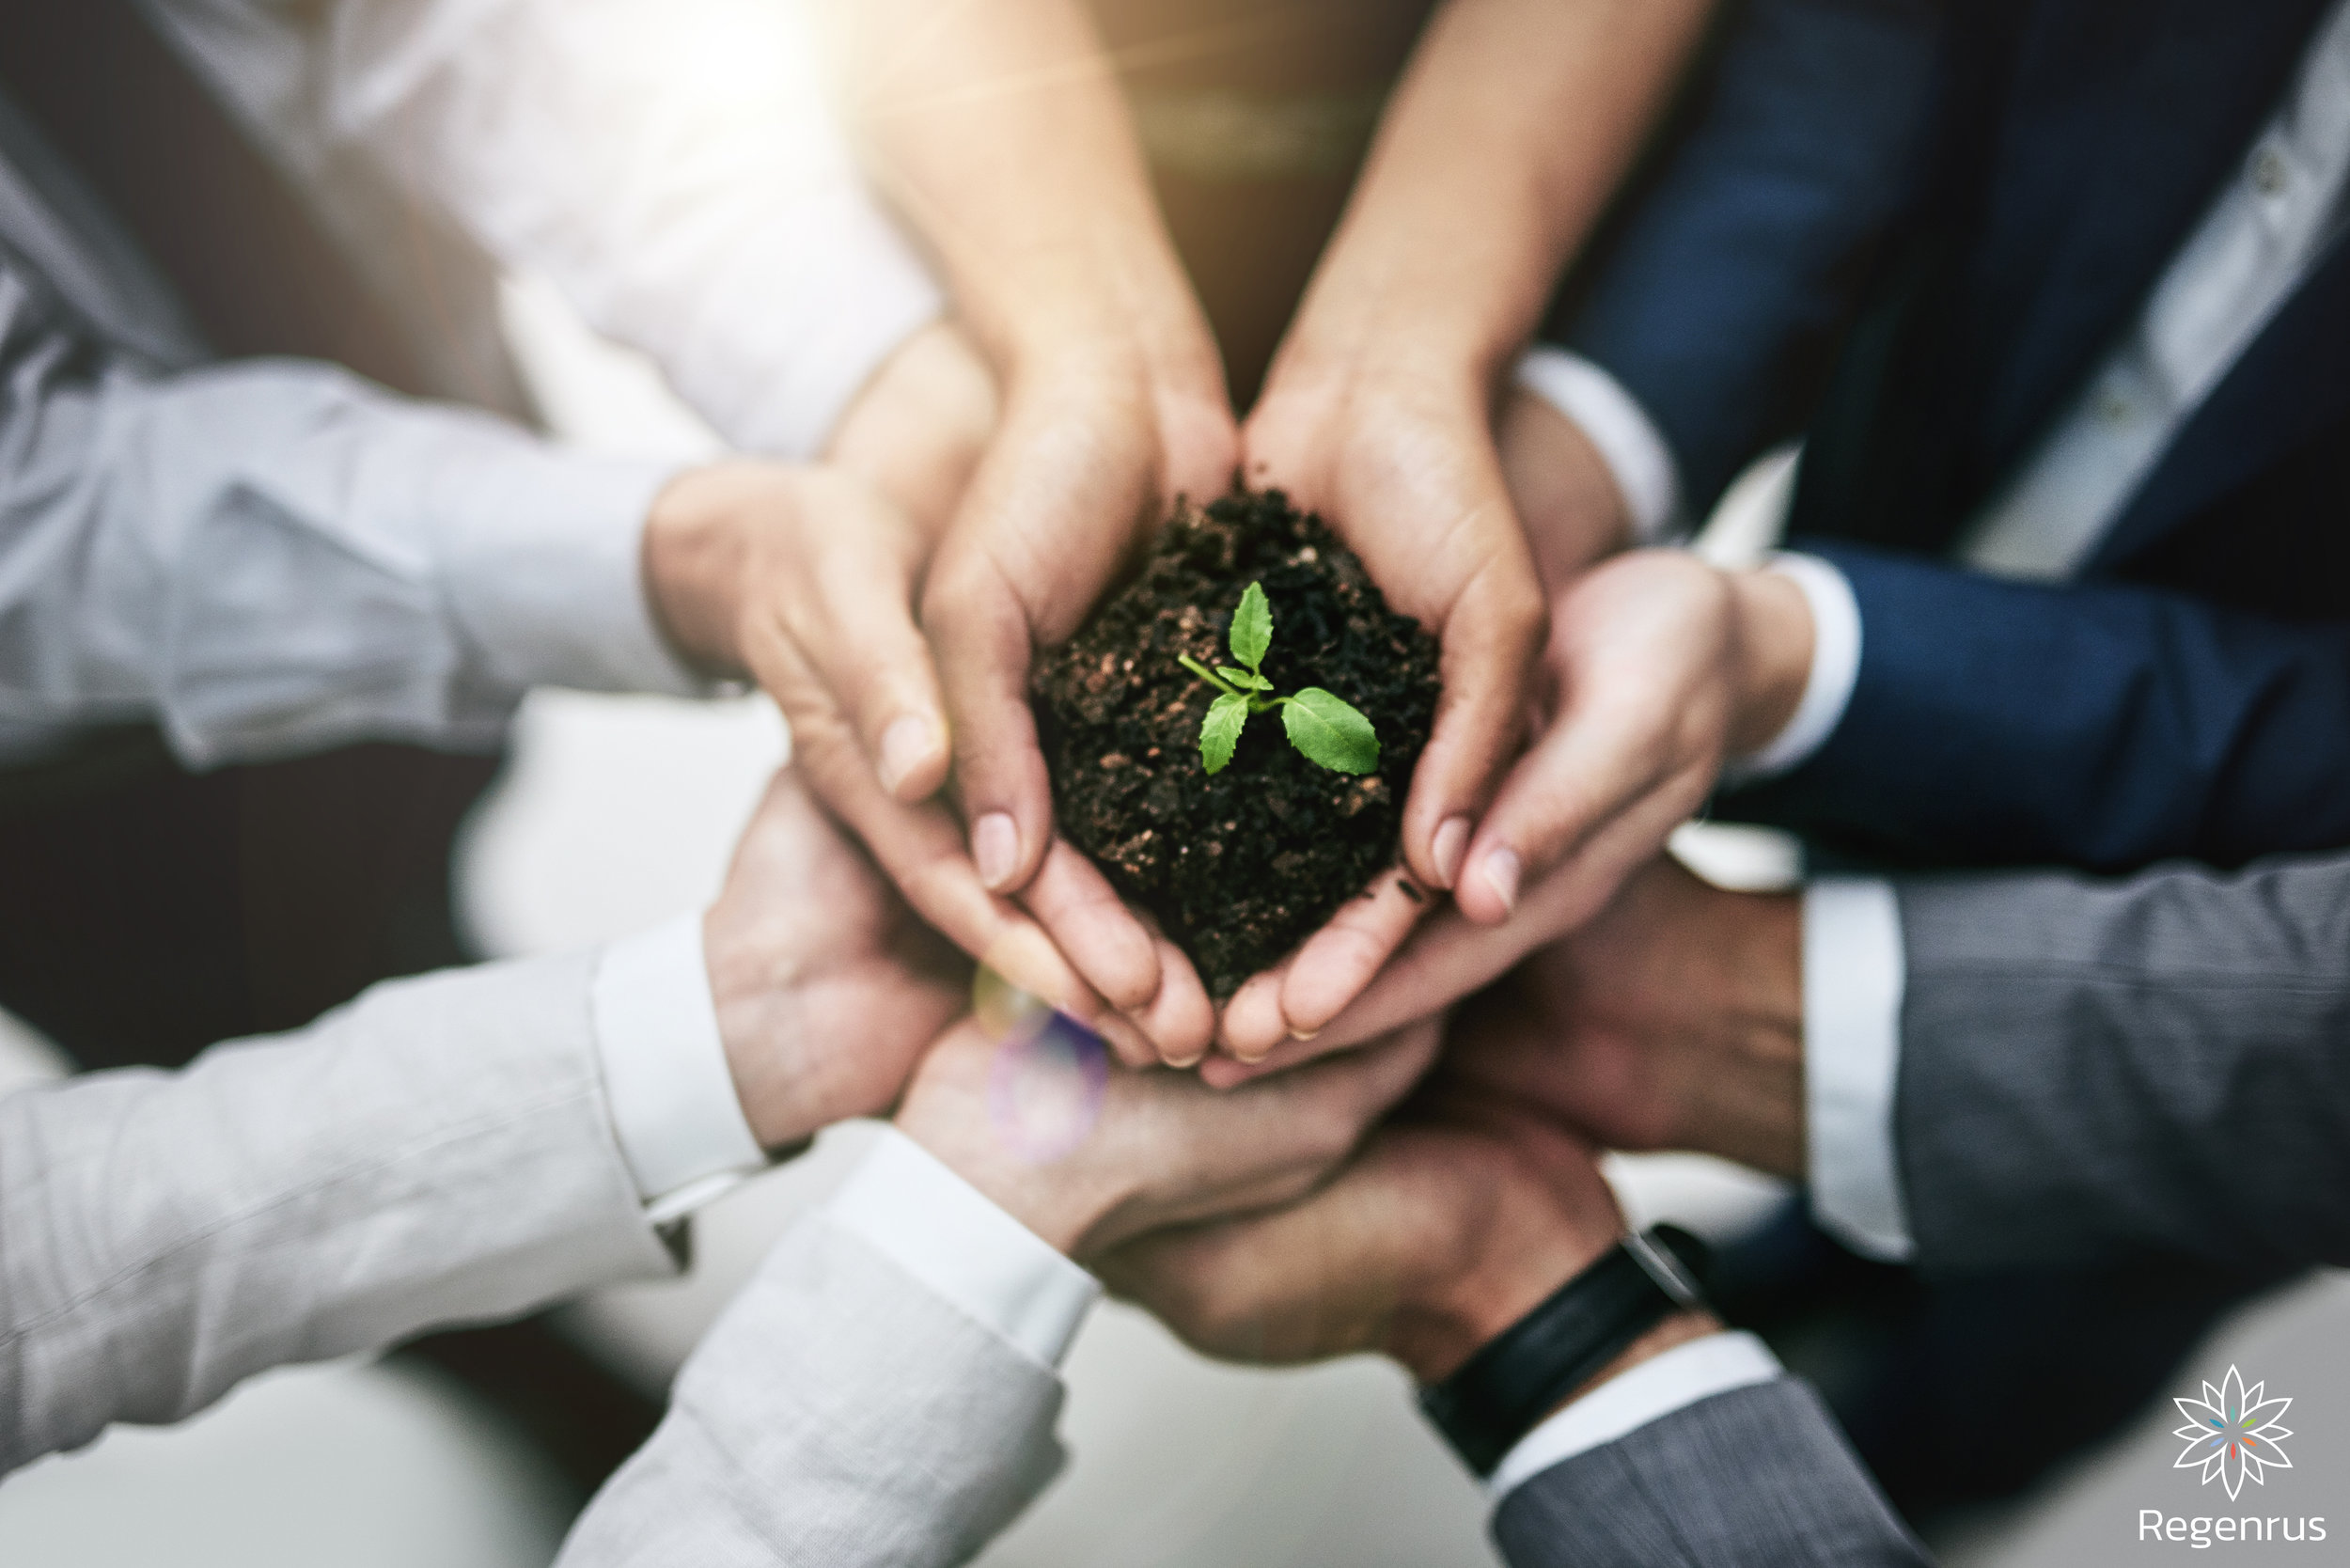 Sustainability grows best when we grow it together.